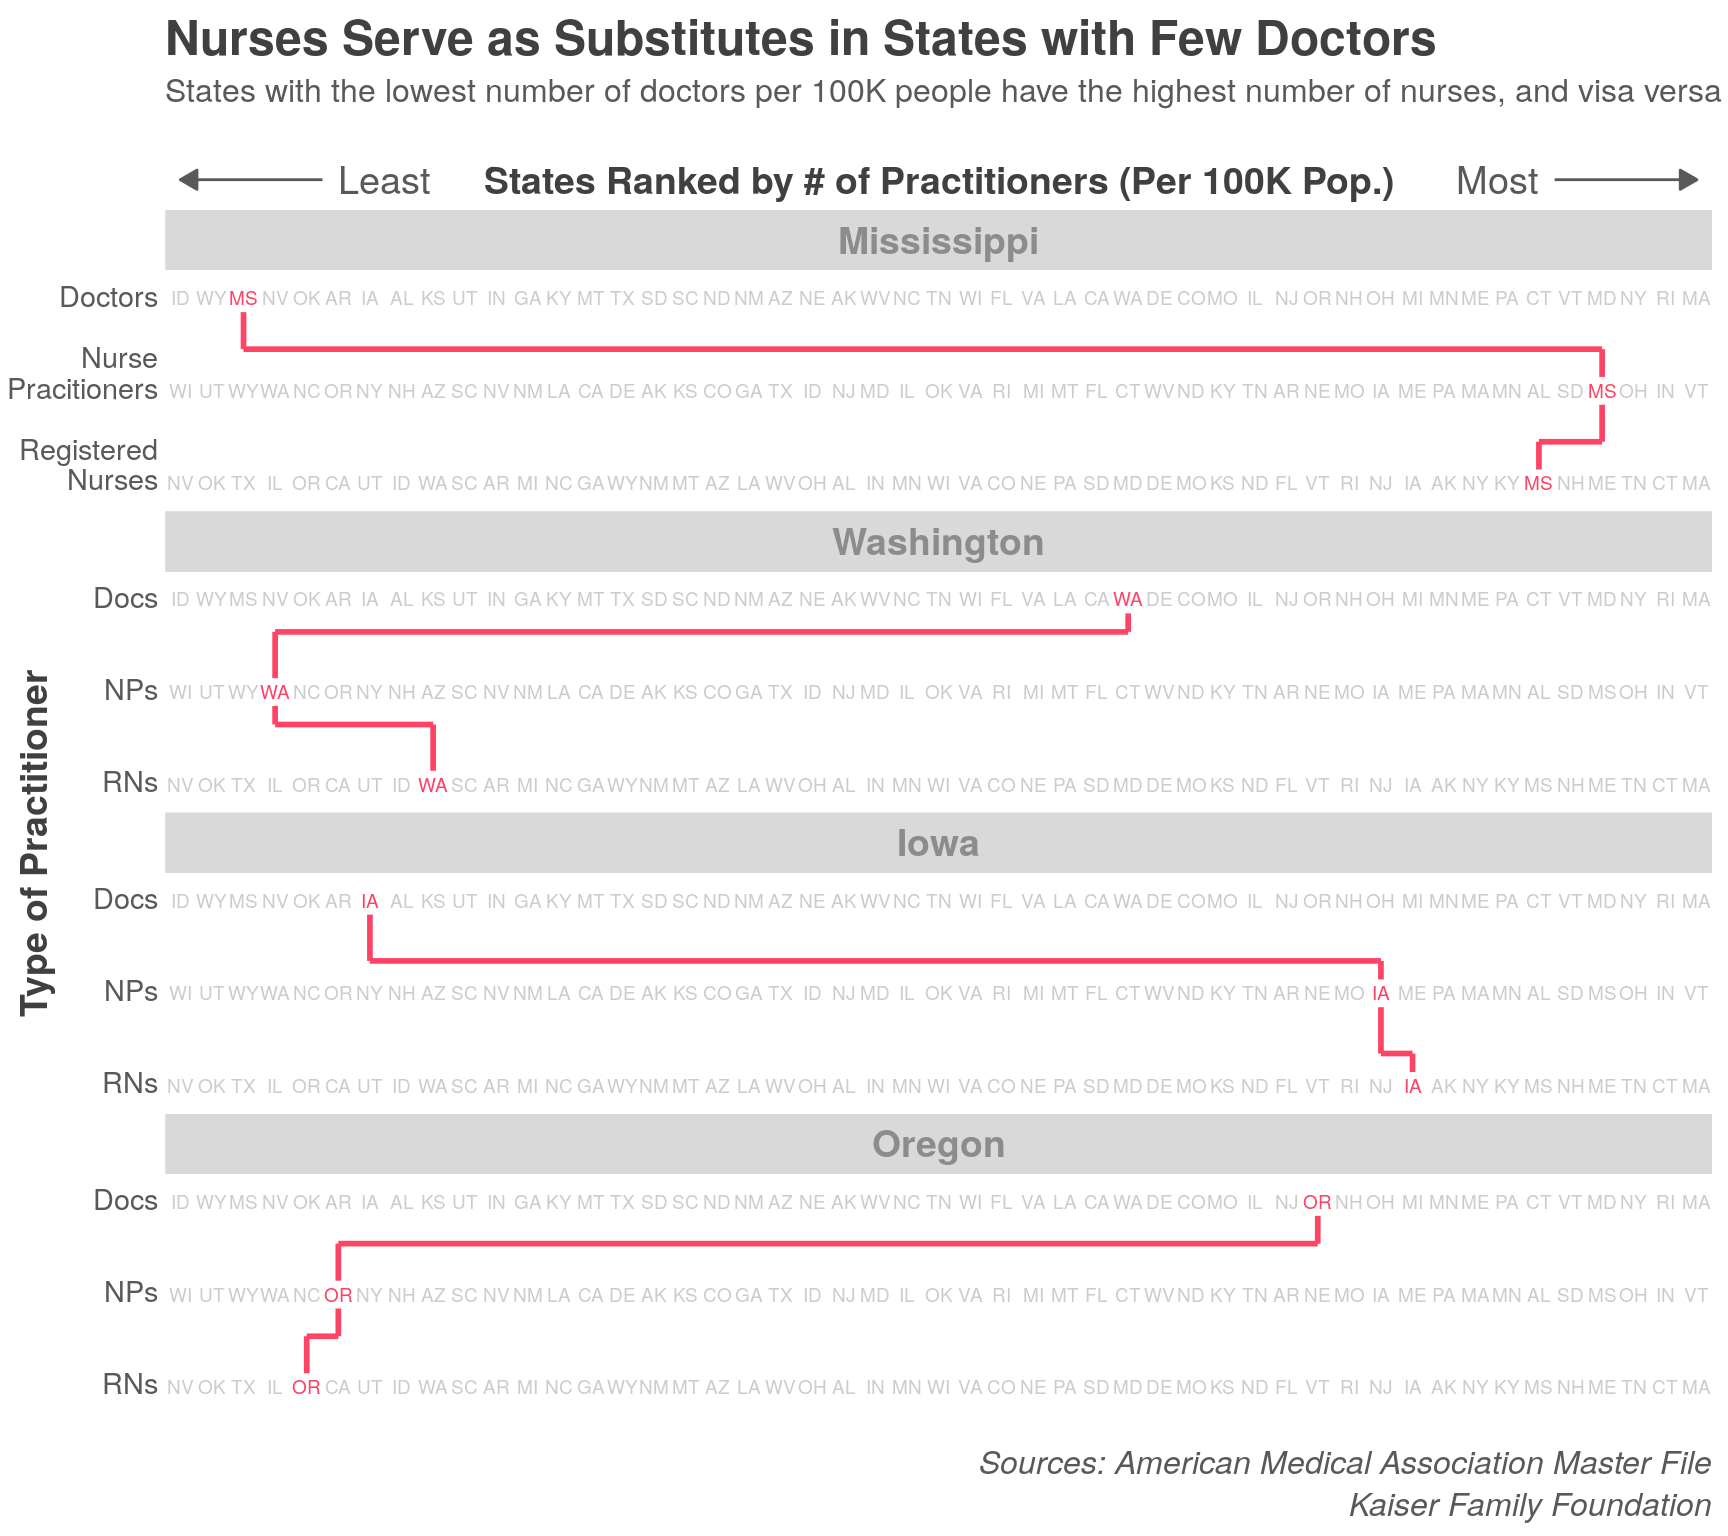 Nurses serve as substitutes in states with few doctors